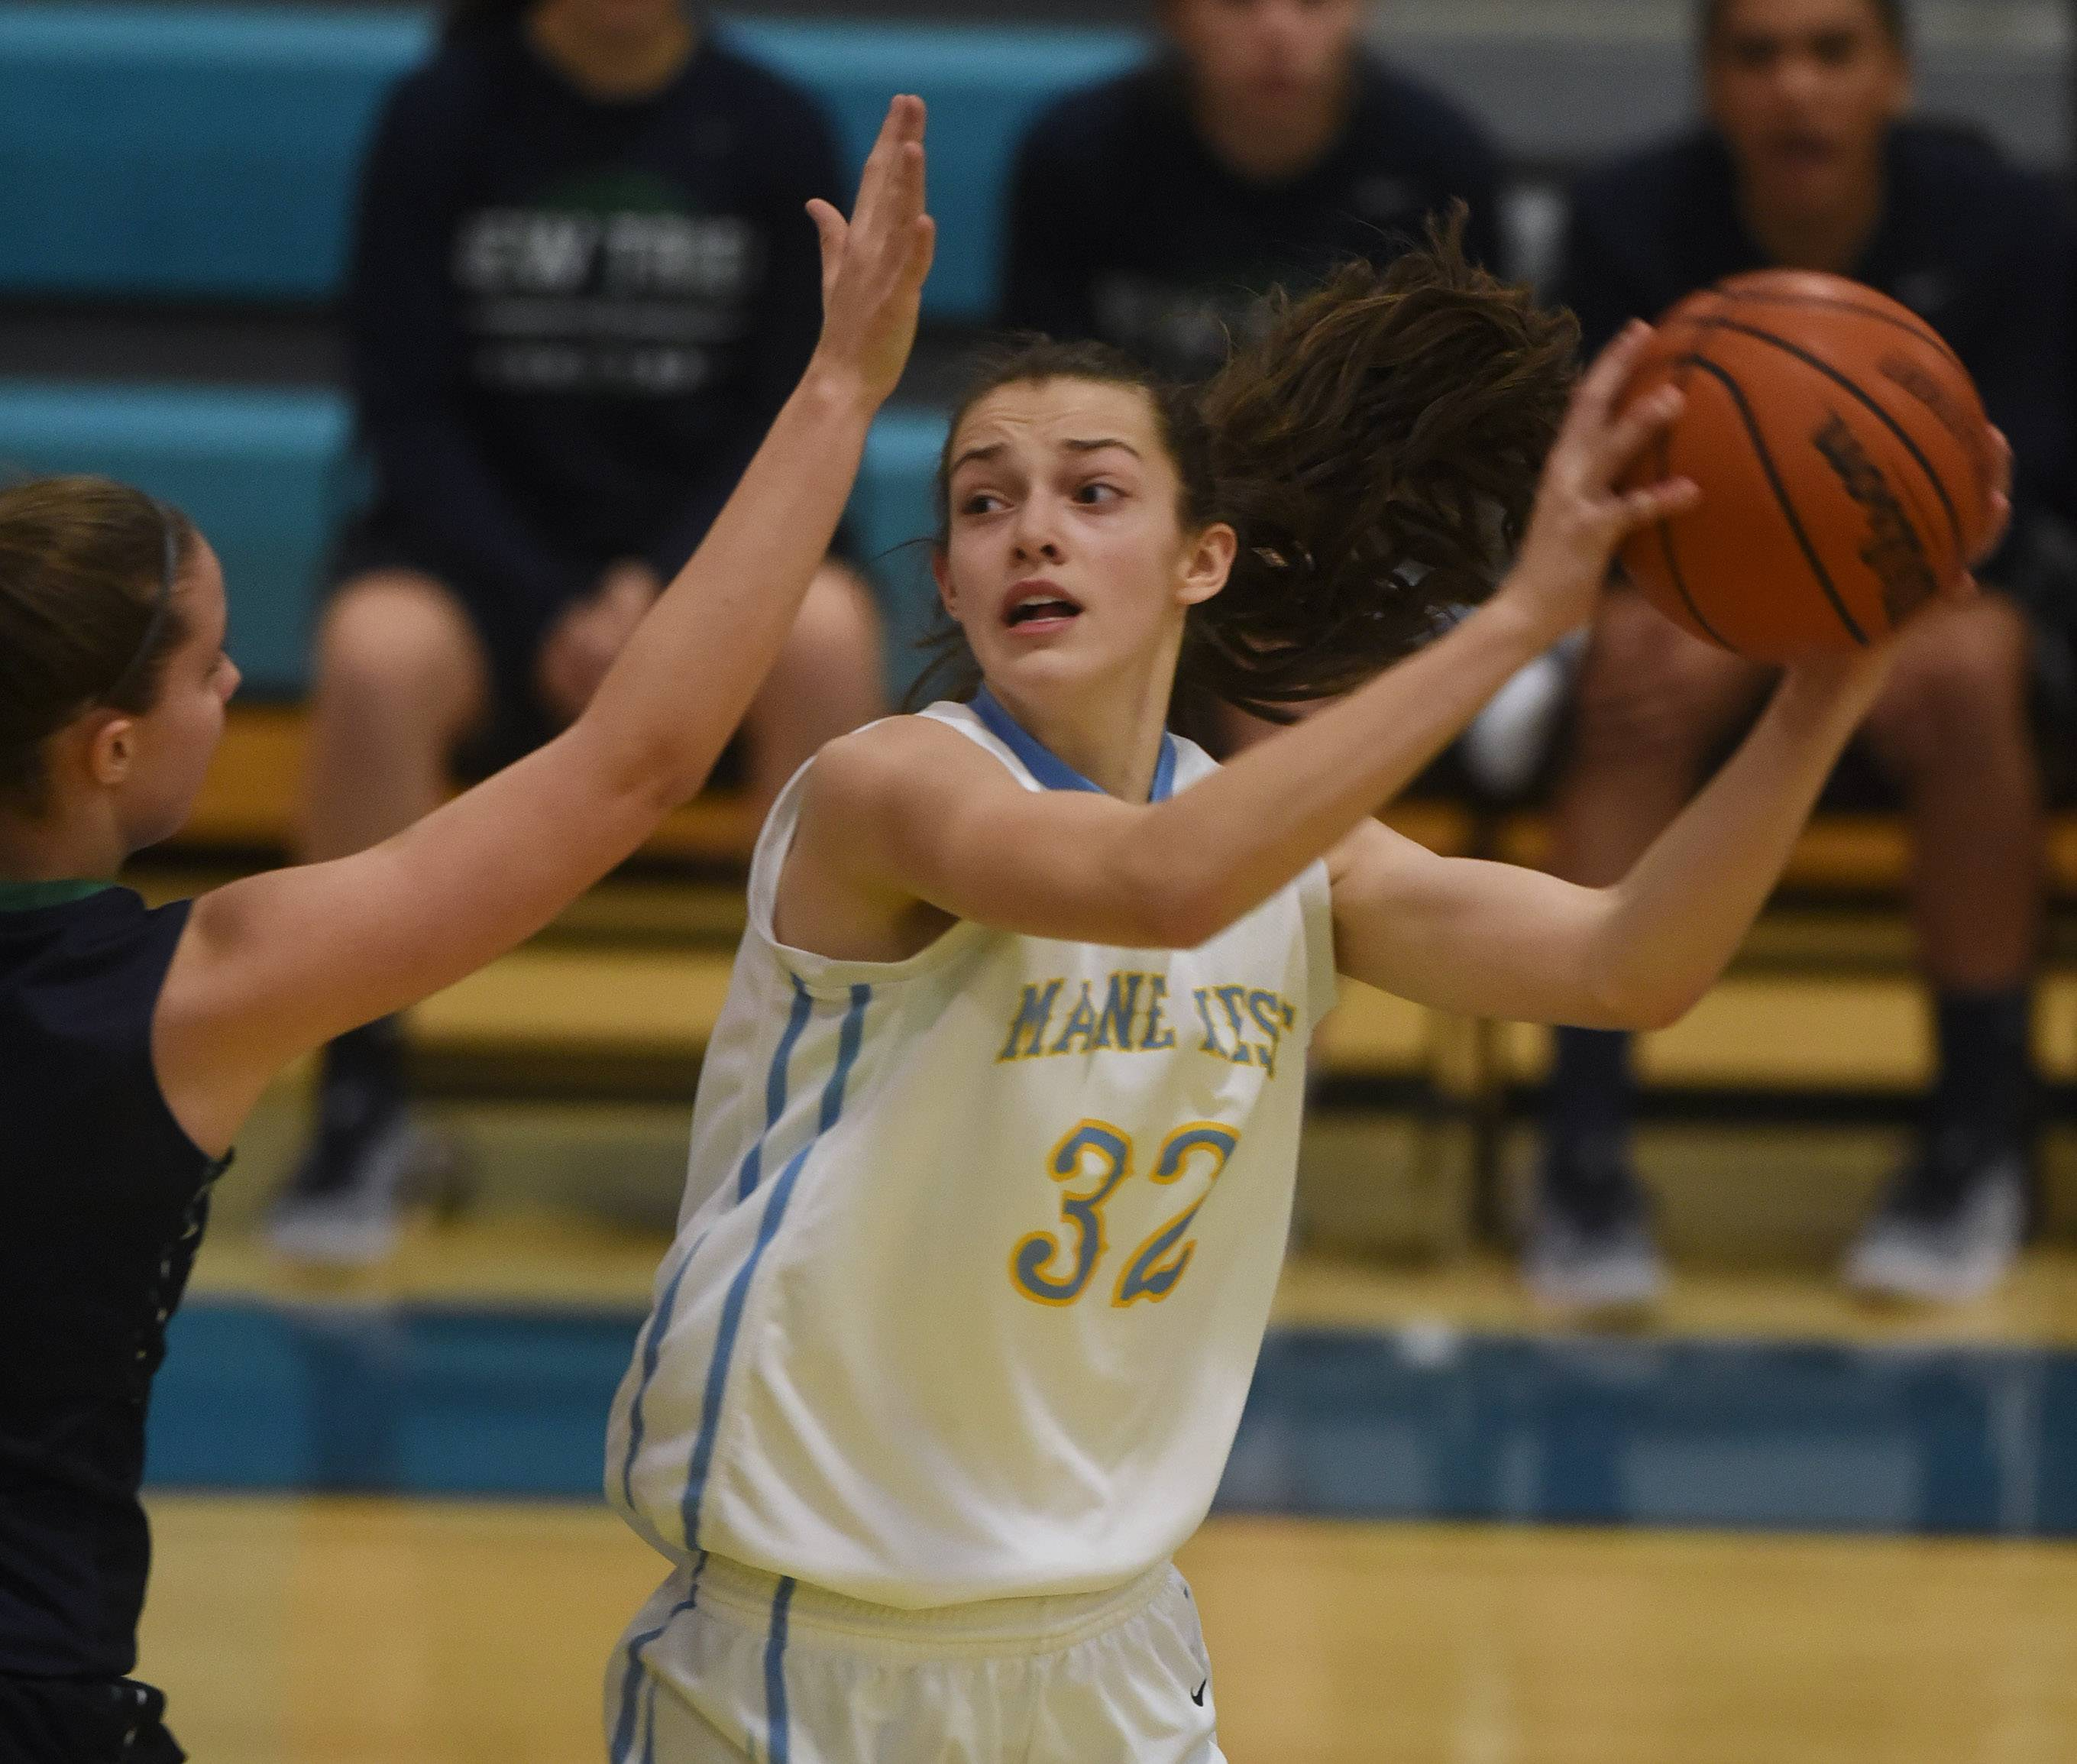 Maine West's Angela Dugalic looks for an open teammate during Tuesday's game against New Trier in Des Plaines.